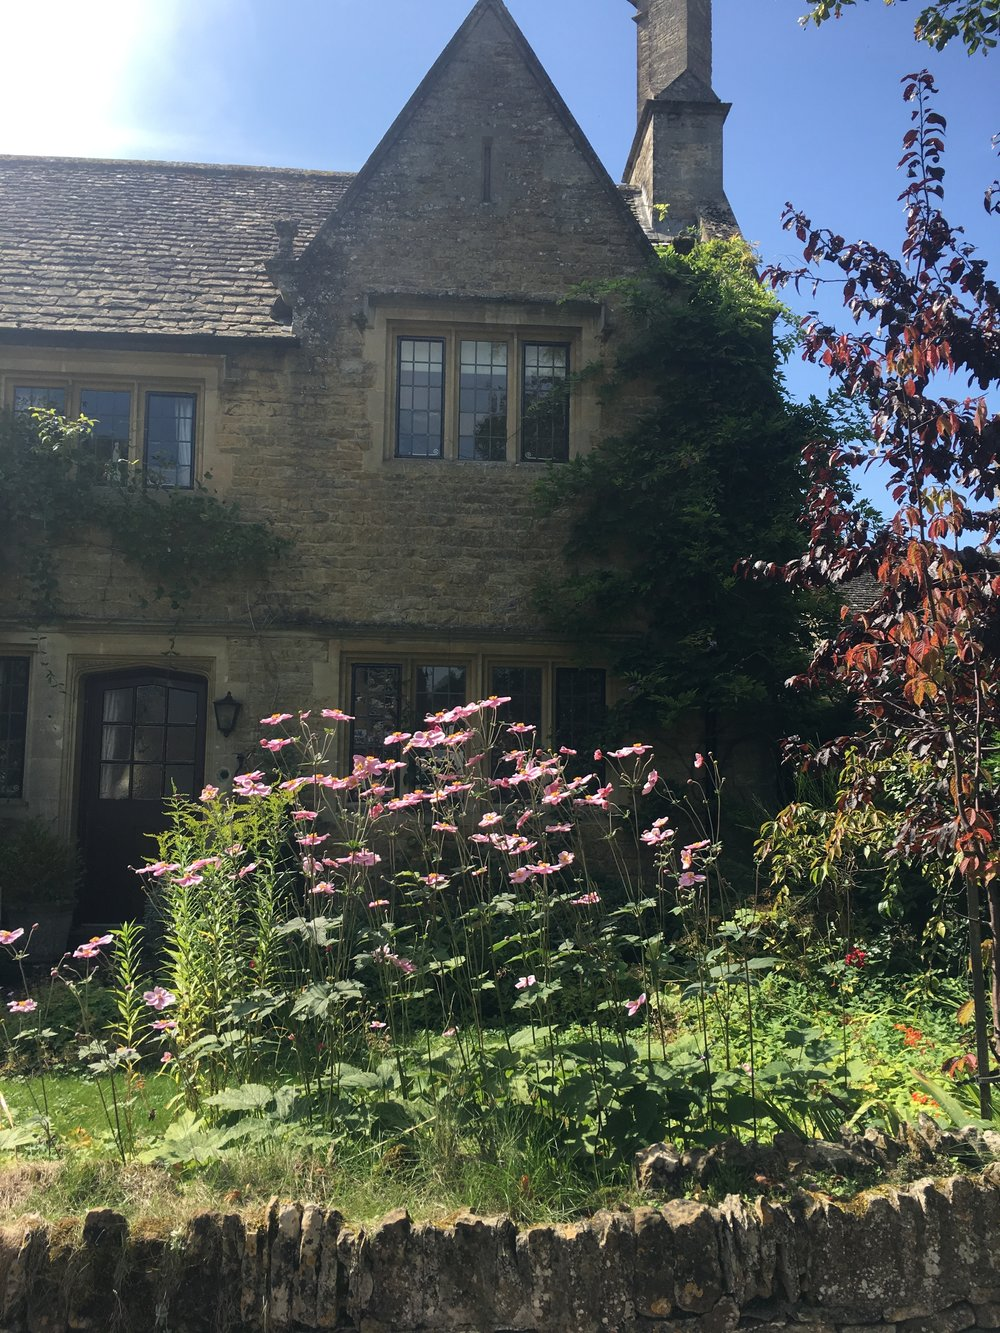 This is a beautiful Cotswold cottage in Bourton-on-the-Water, which is the most picturesque village. The old buildings have not been touched and it contains so much charm and character.